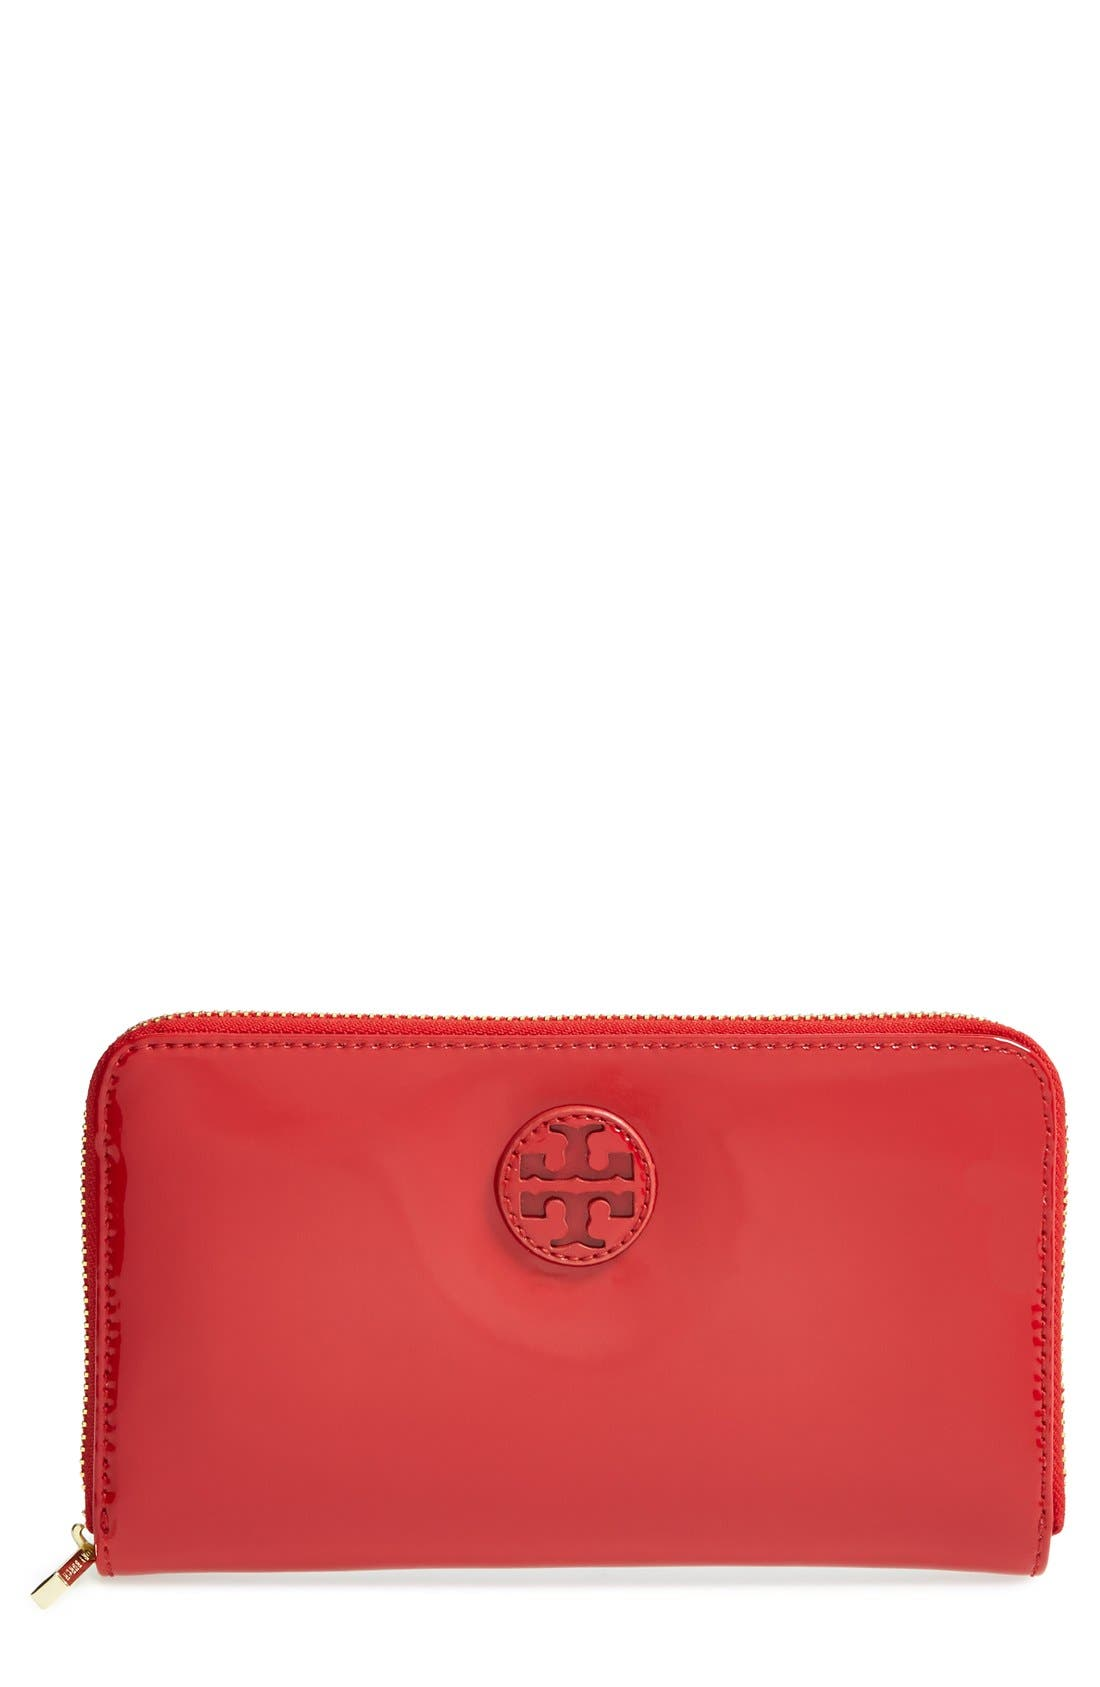 Alternate Image 1 Selected - Tory Burch Patent Leather Zip Around Wallet